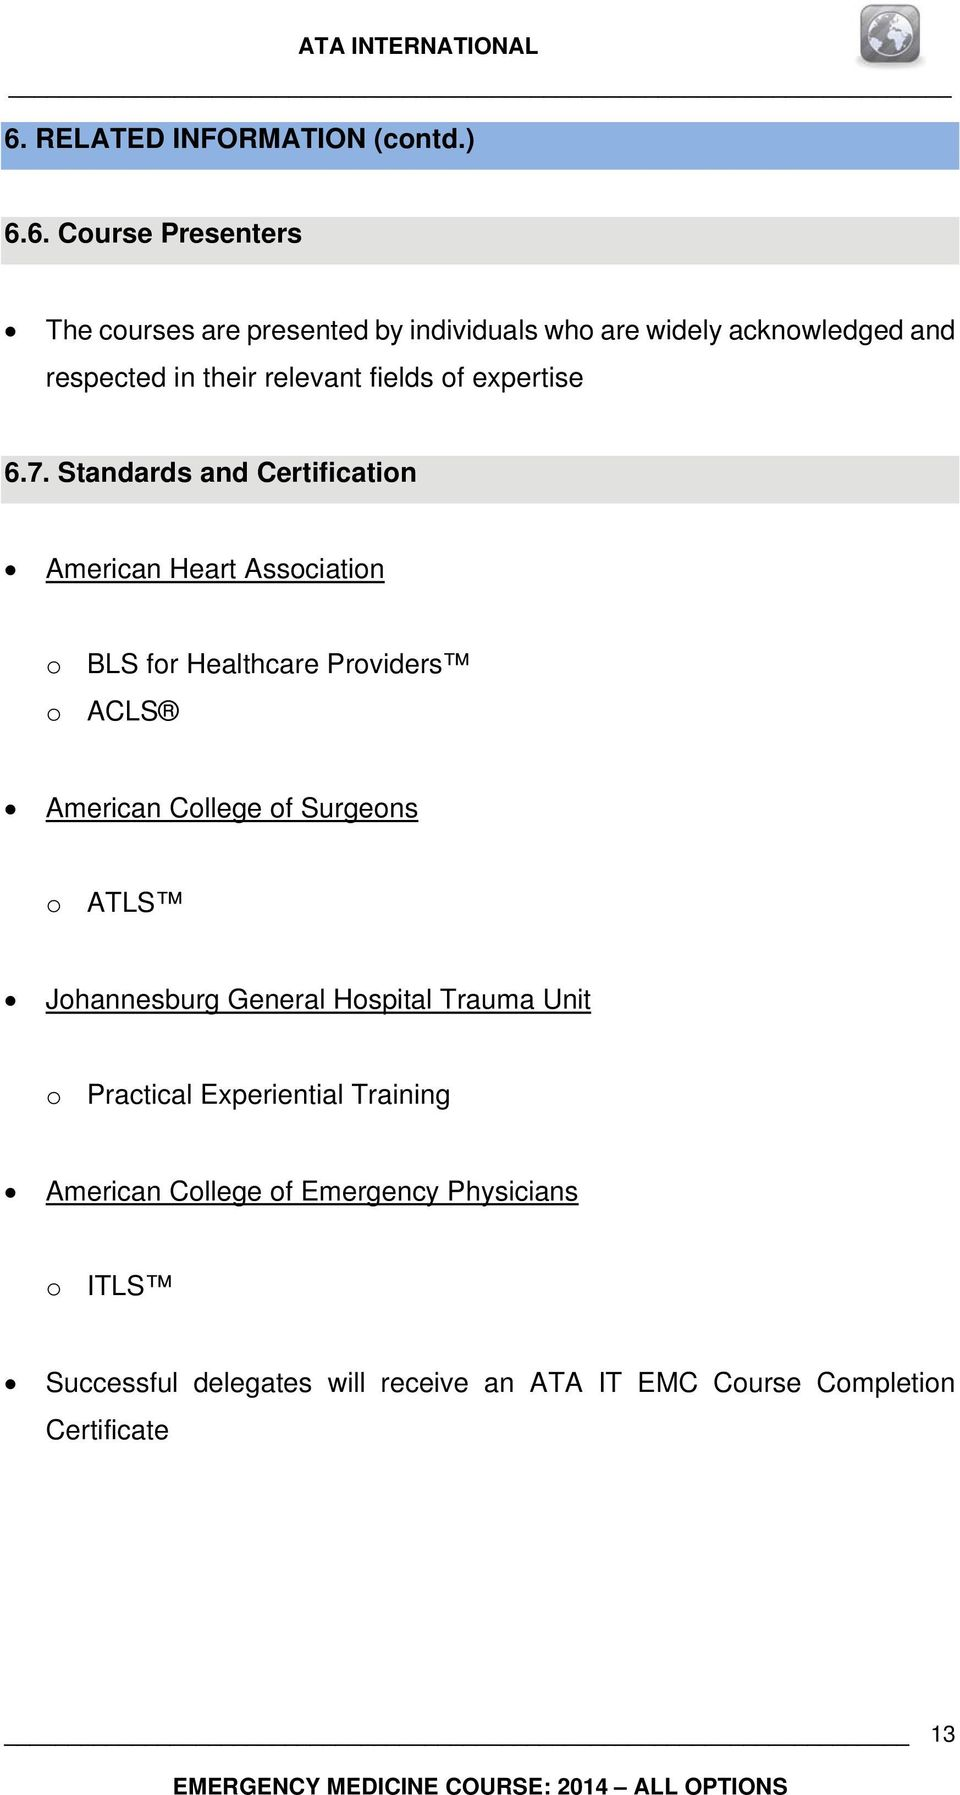 Standards and Certification American Heart Association o BLS for Healthcare Providers o ACLS American College of Surgeons o ATLS